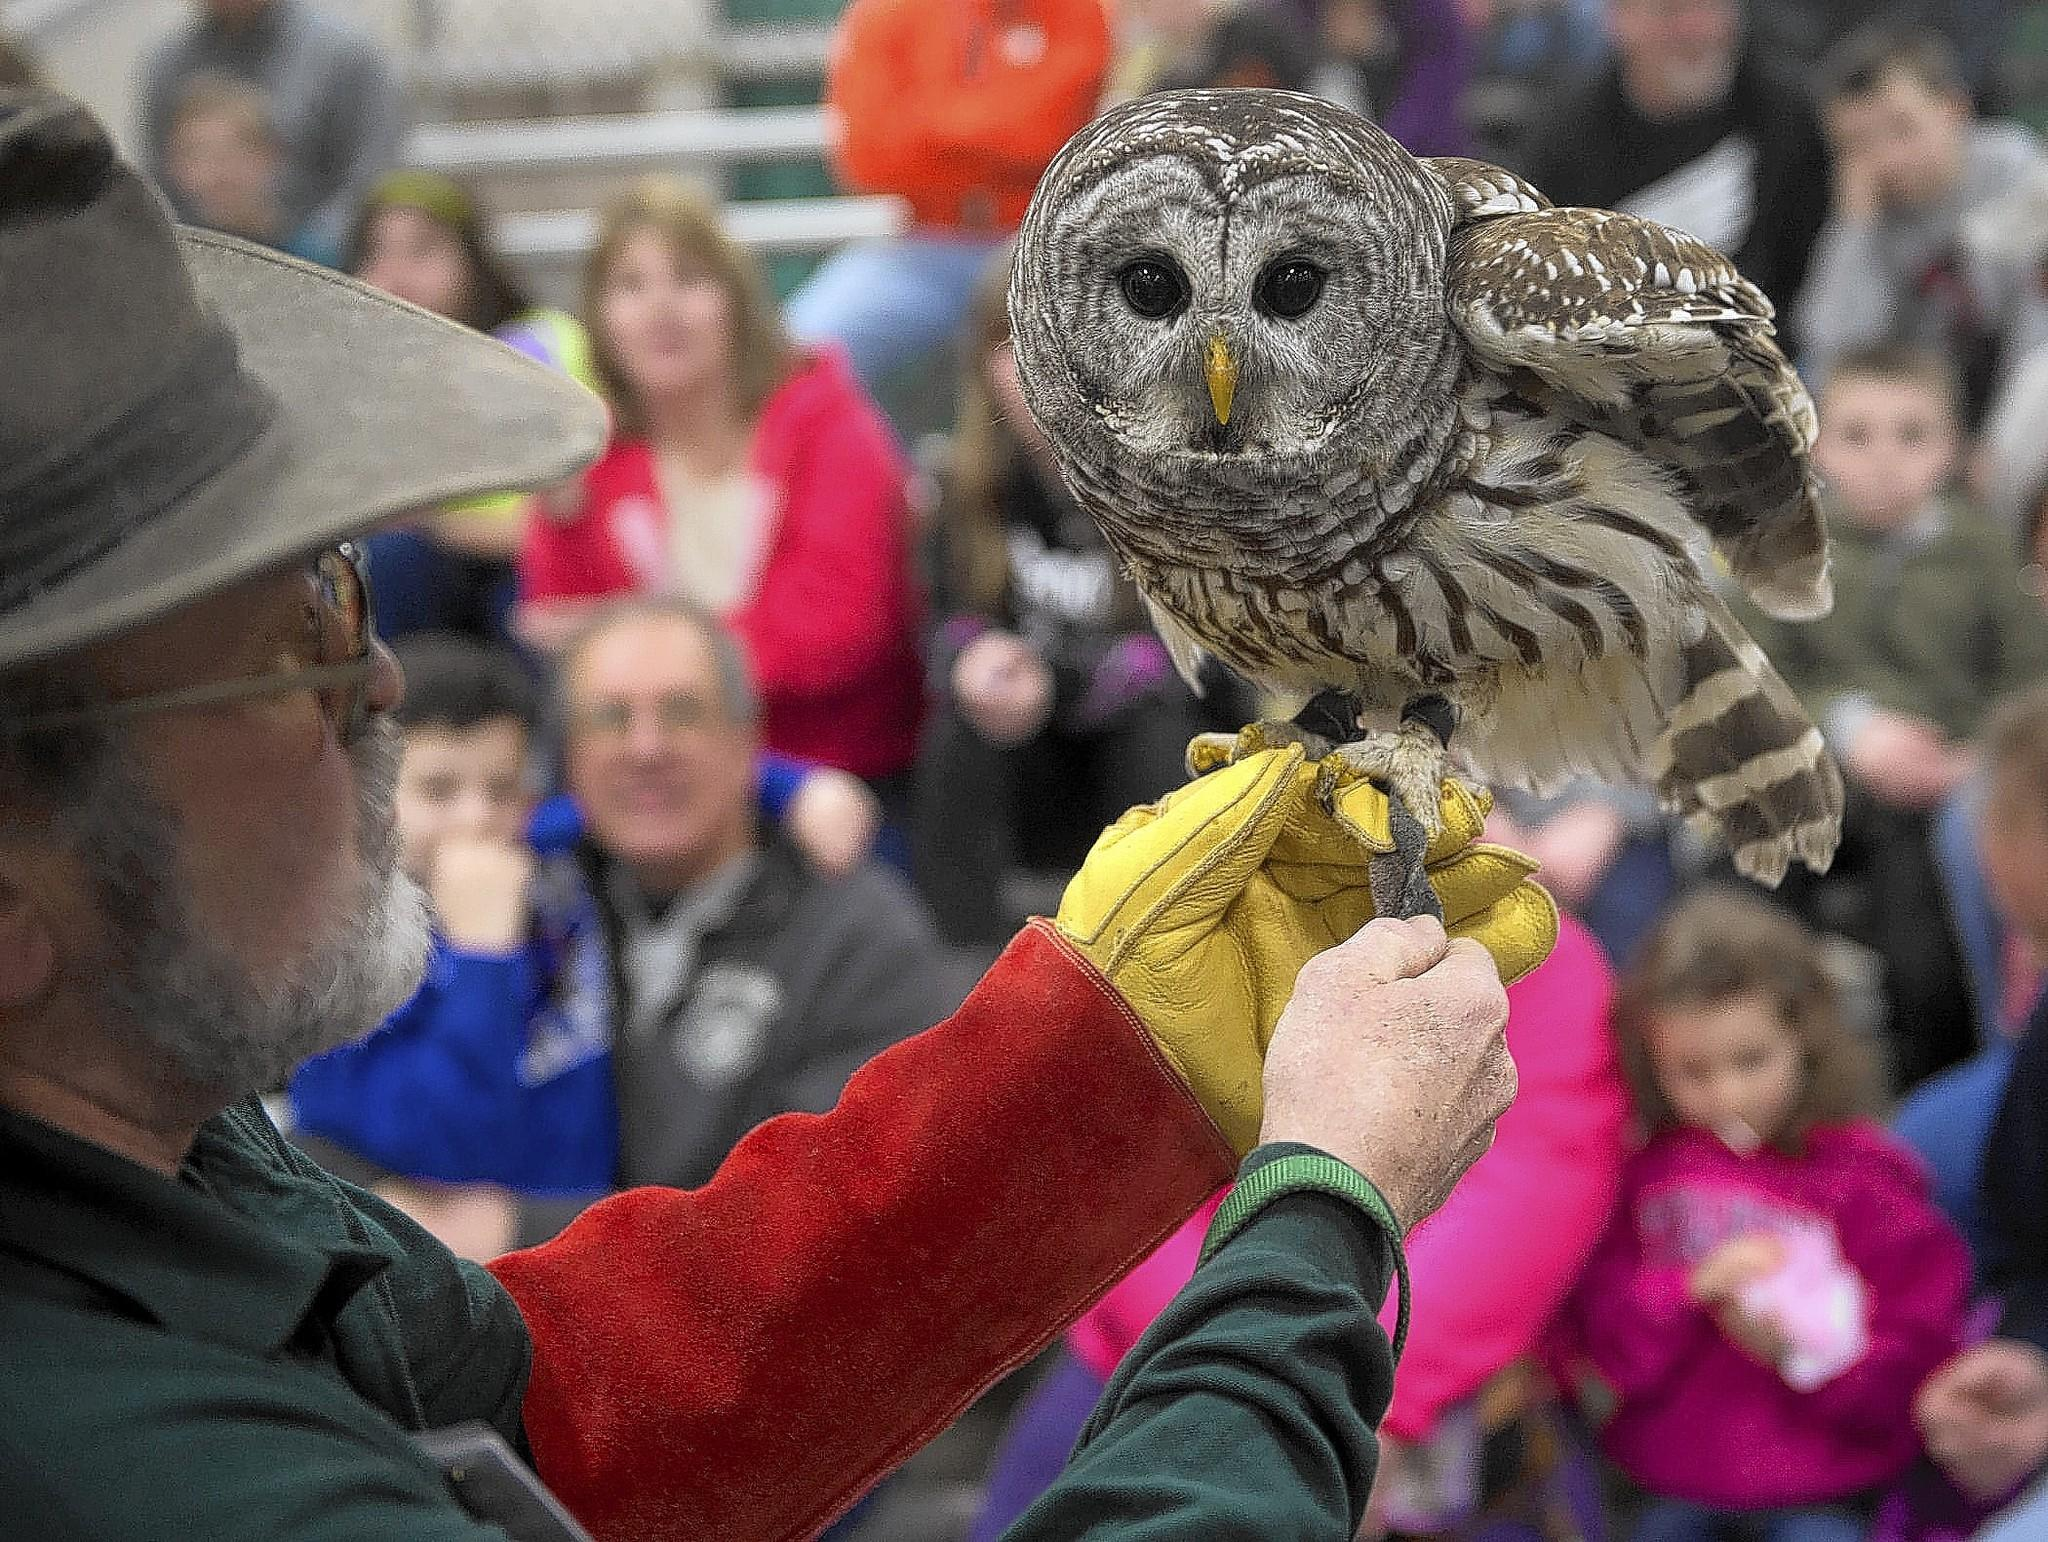 Eric Uhler holds a Barred Owl for members of the audience to see during a demonstration at the 2014 Lehigh Valley Sportsman Show, held at the Agri-Plex at the Allentown Fairgrounds on Sunday.